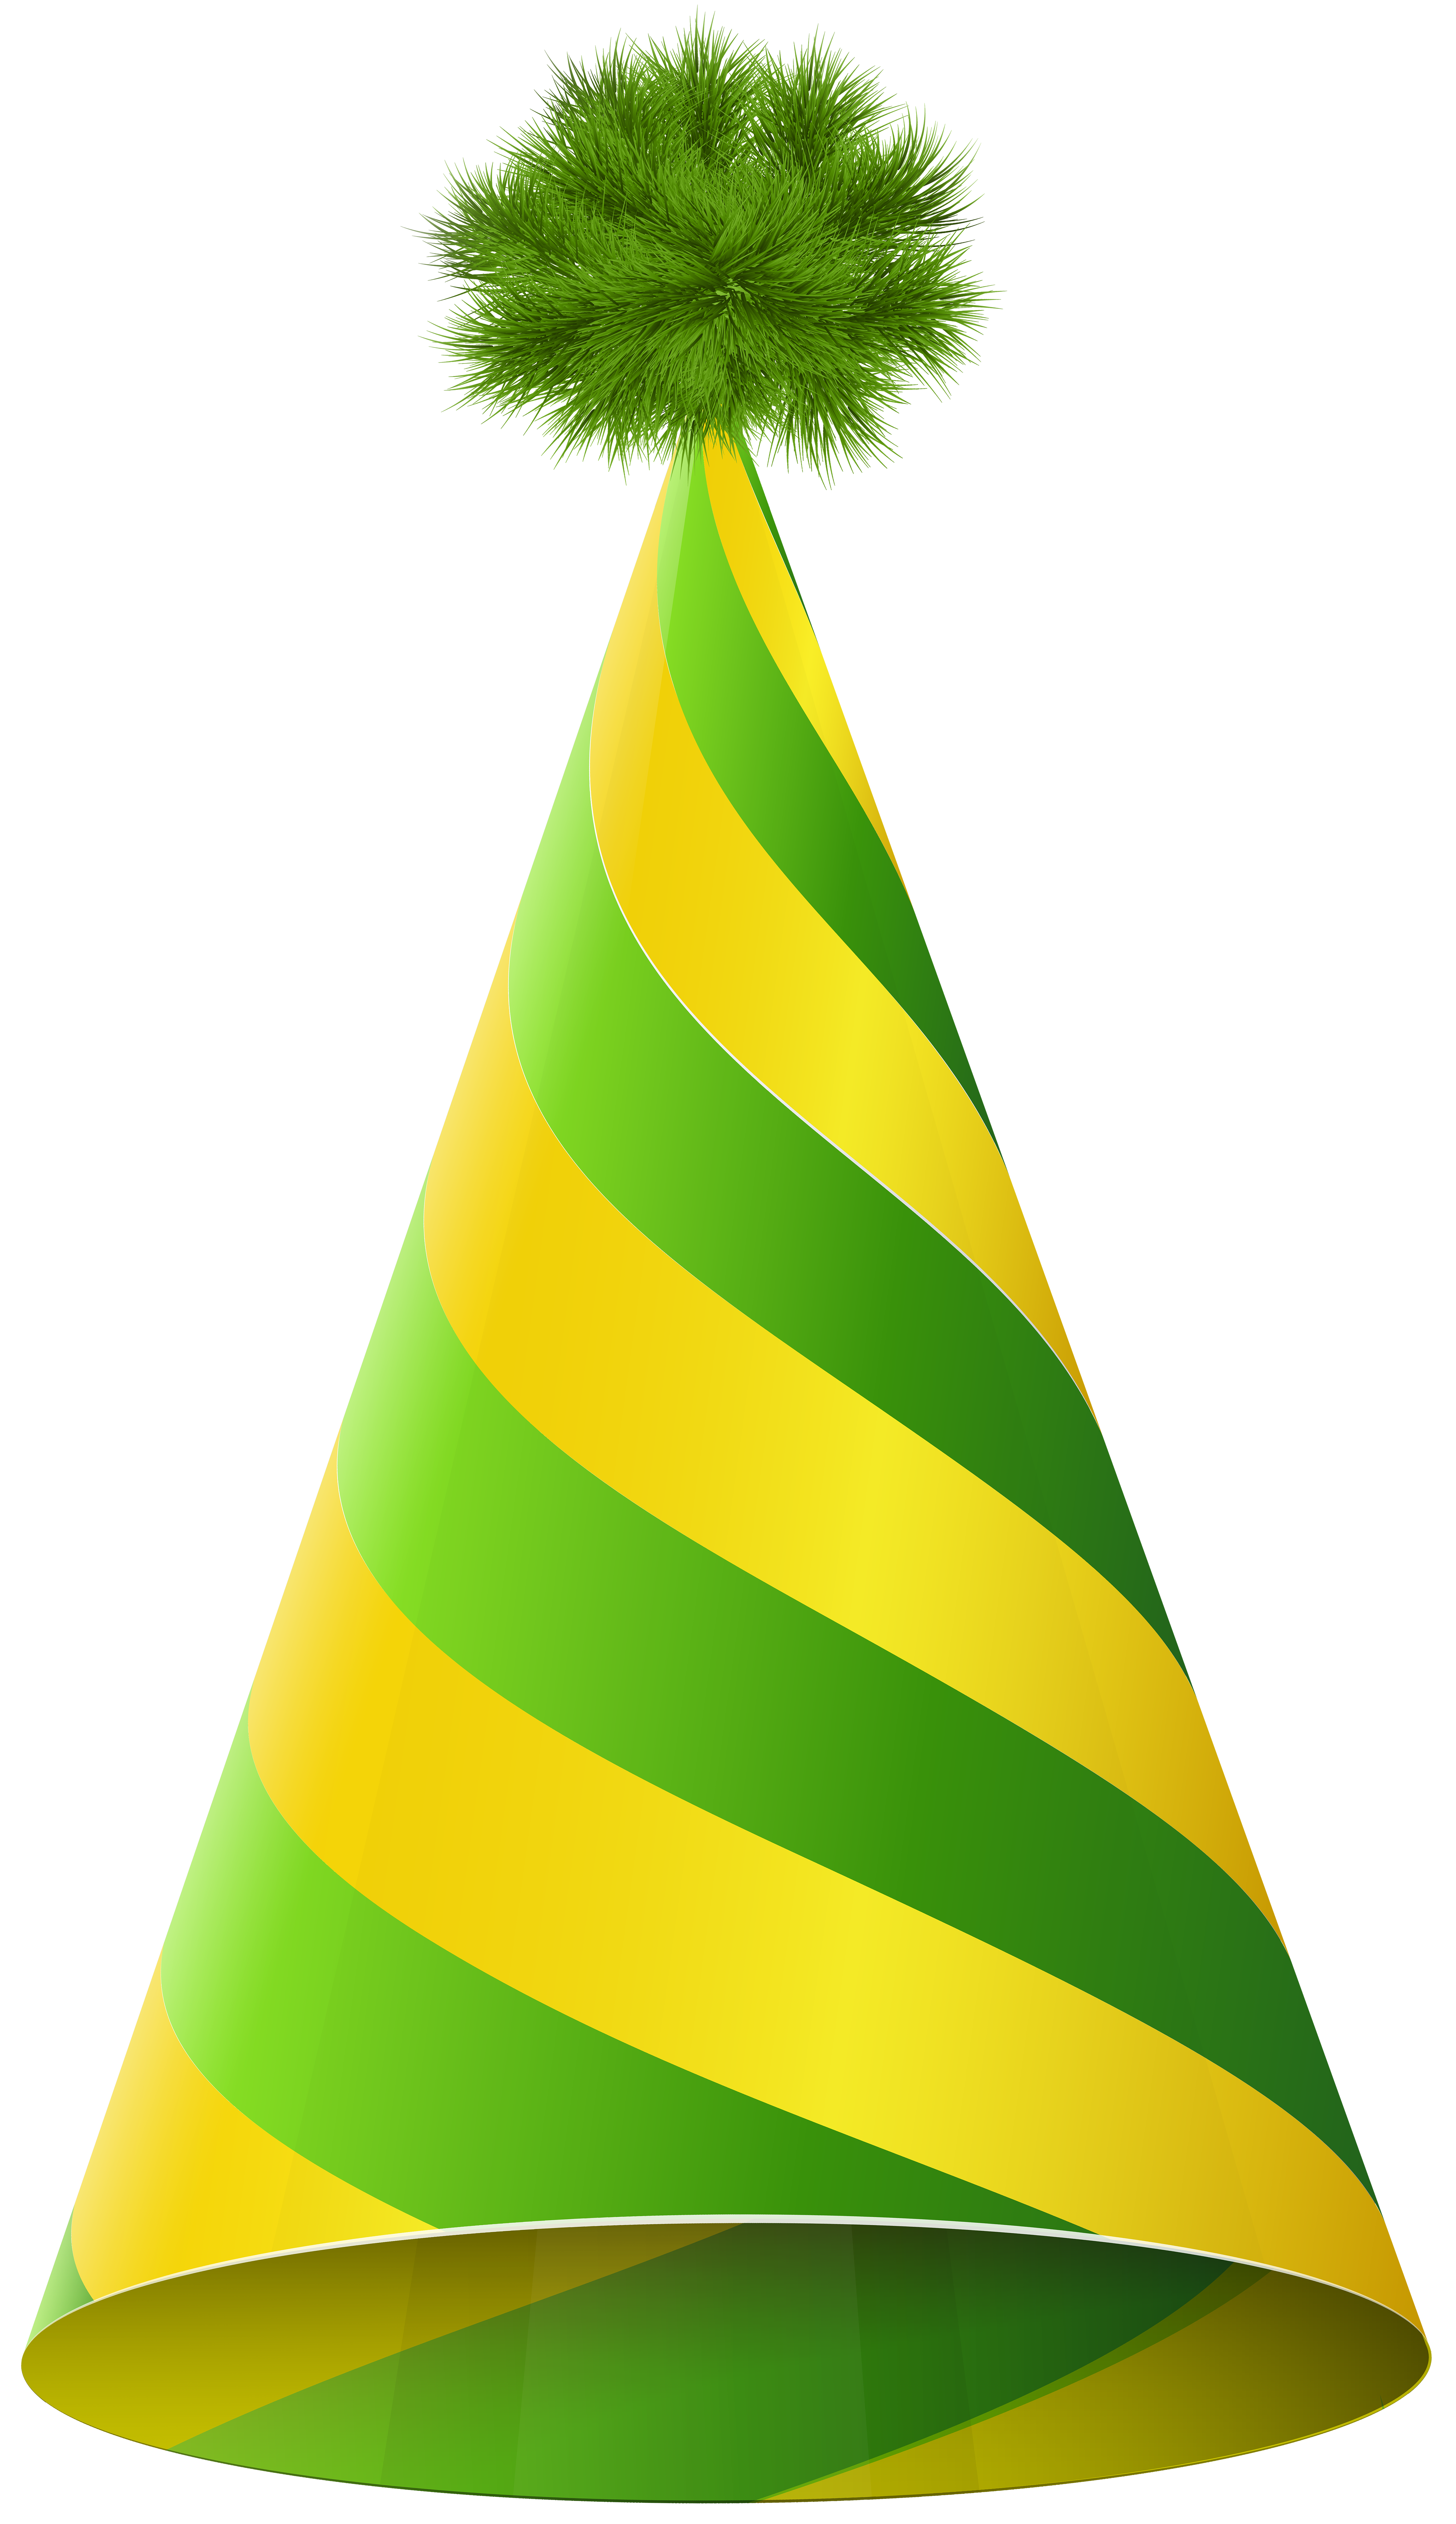 Green and yellow clipart clip art free stock Party Hat Green Yellow Transparent PNG Clip Art Image | Gallery ... clip art free stock